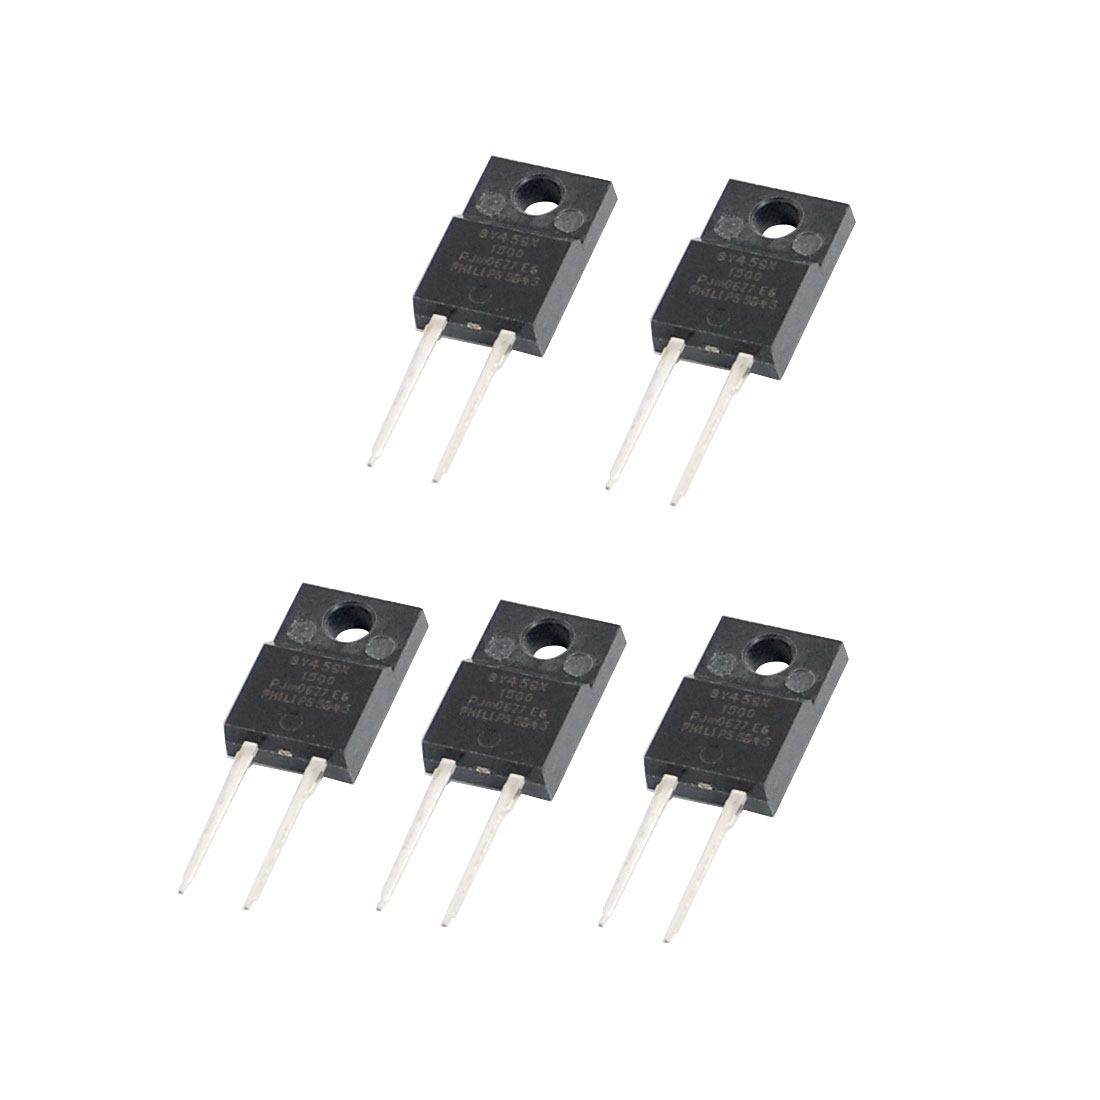 BY459X-1500 Type 2 Pin Terminals Damper Diodes 8A 1500V 5 Pcs